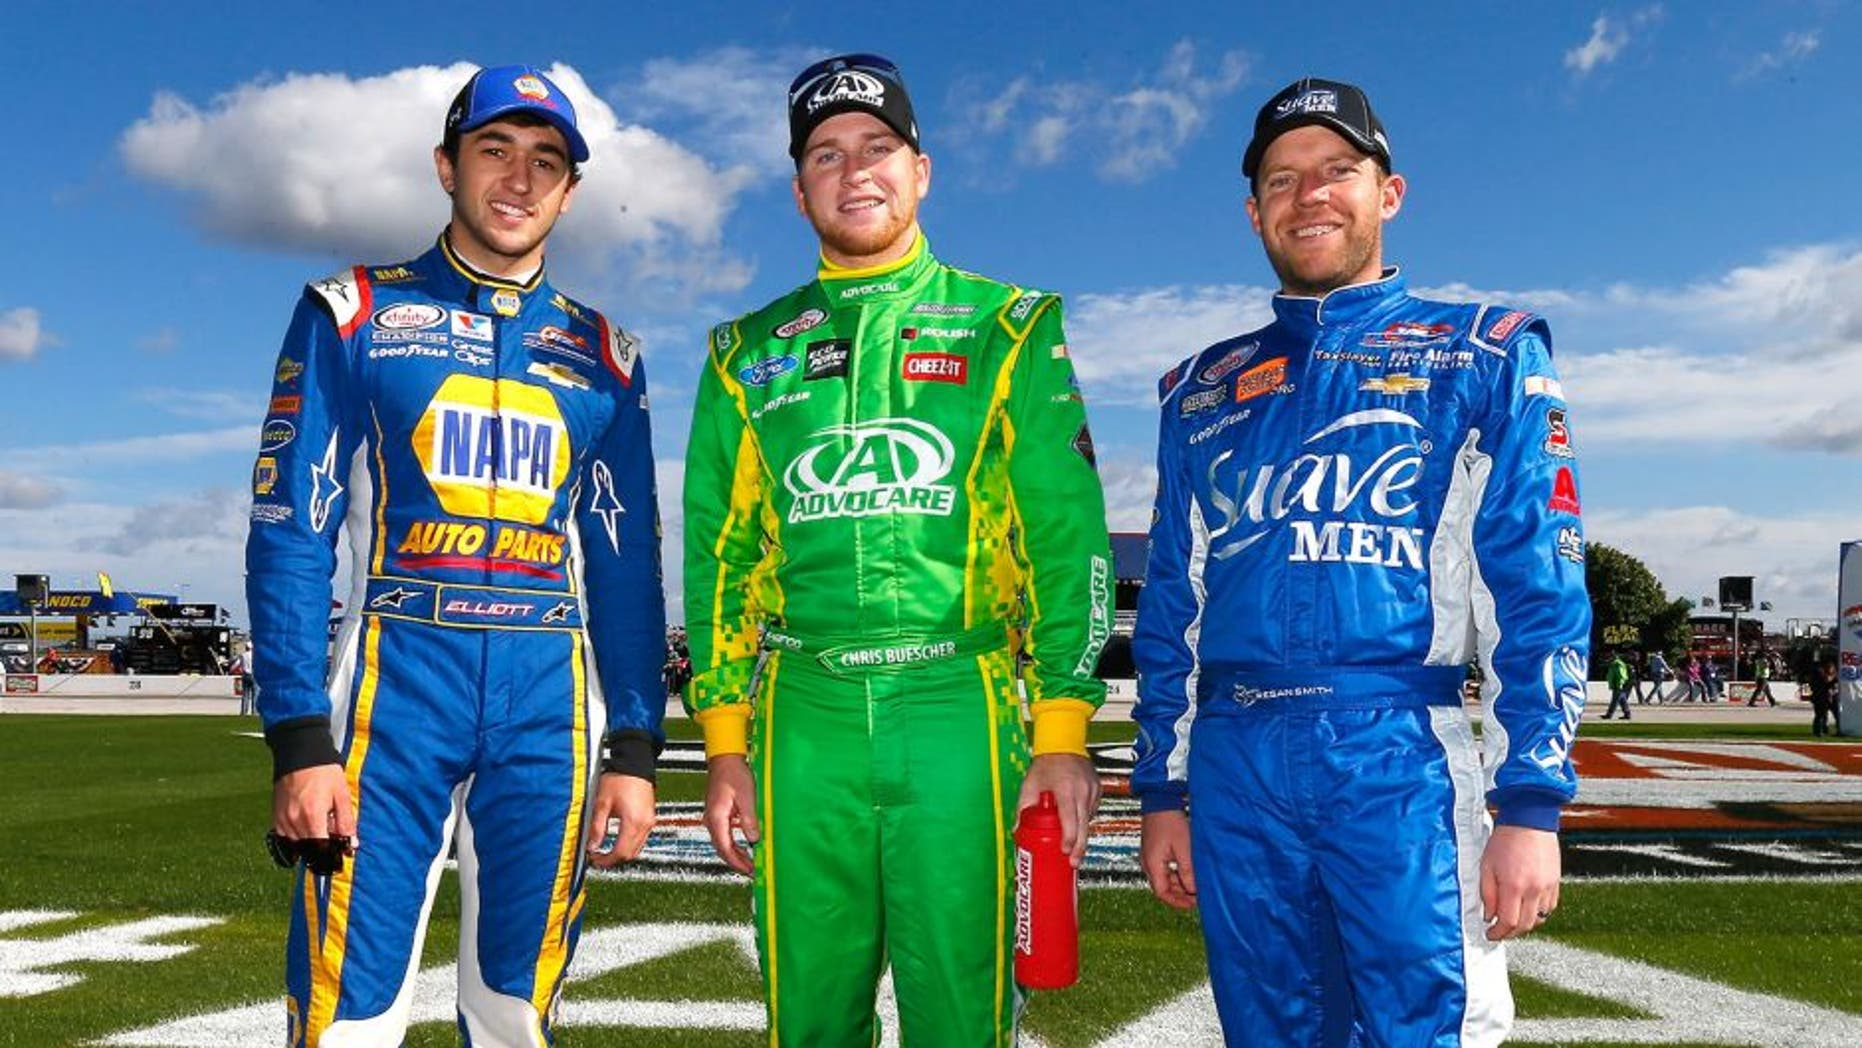 FORT WORTH, TX - NOVEMBER 07: (L-R) Championship contenders Chase Elliott, driver of the #9 NAPA Auto Parts Chevrolet, Chris Buescher, driver of the #60 AdvoCare Ford, and Regan Smith, driver of the #7 Suave Men Chevrolet, pose prior to the NASCAR XFINITY Series O'Reilly Auto Parts Challenge at Texas Motor Speedway on November 7, 2015 in Fort Worth, Texas. (Photo by Jonathan Ferrey/Getty Images for Texas Motor Speedway)